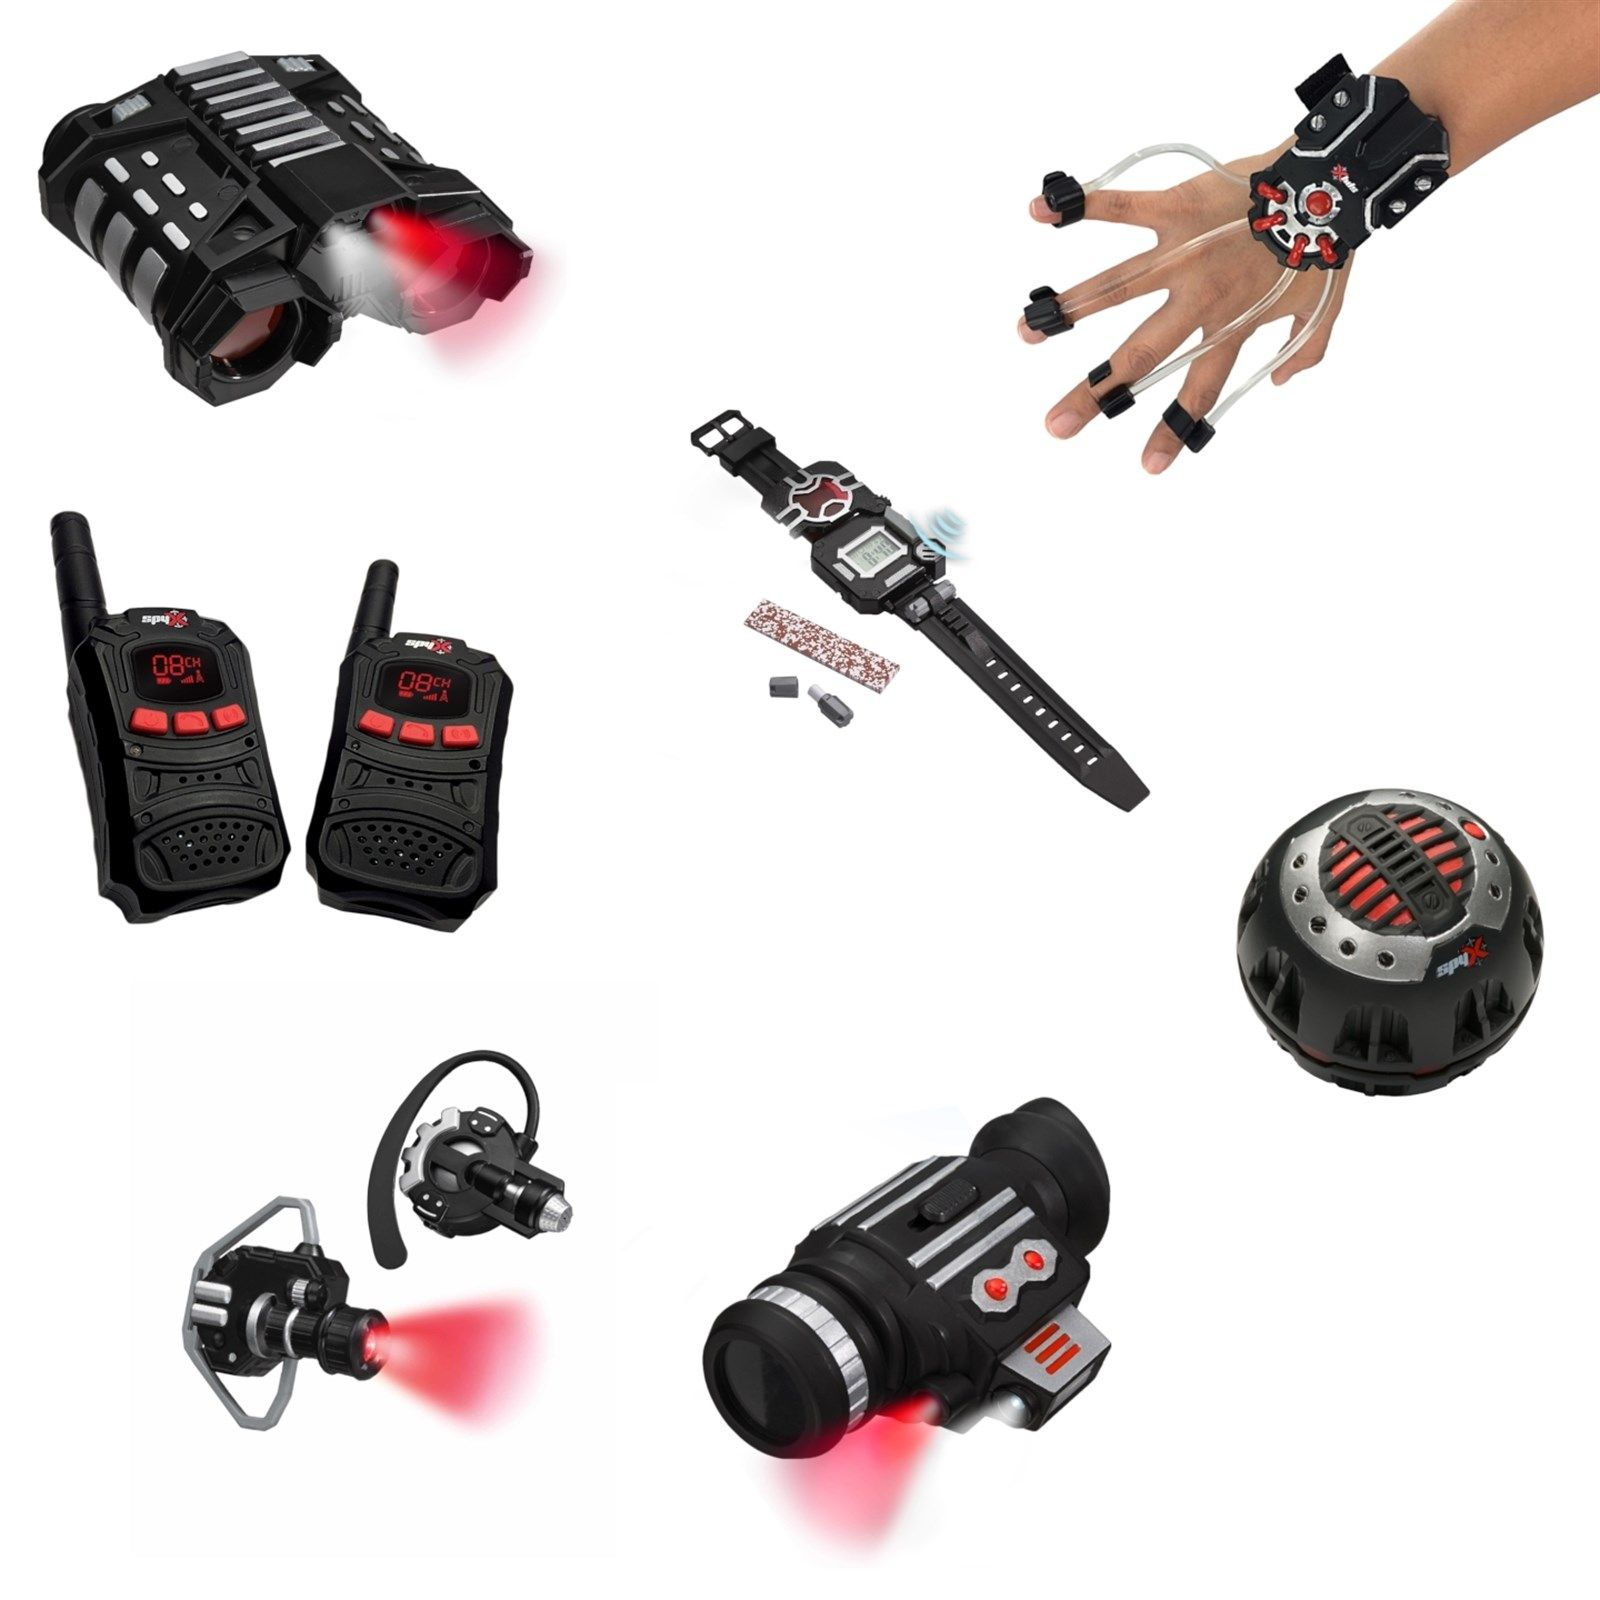 SpyX Spy Gear | Cool Spy Gadgets